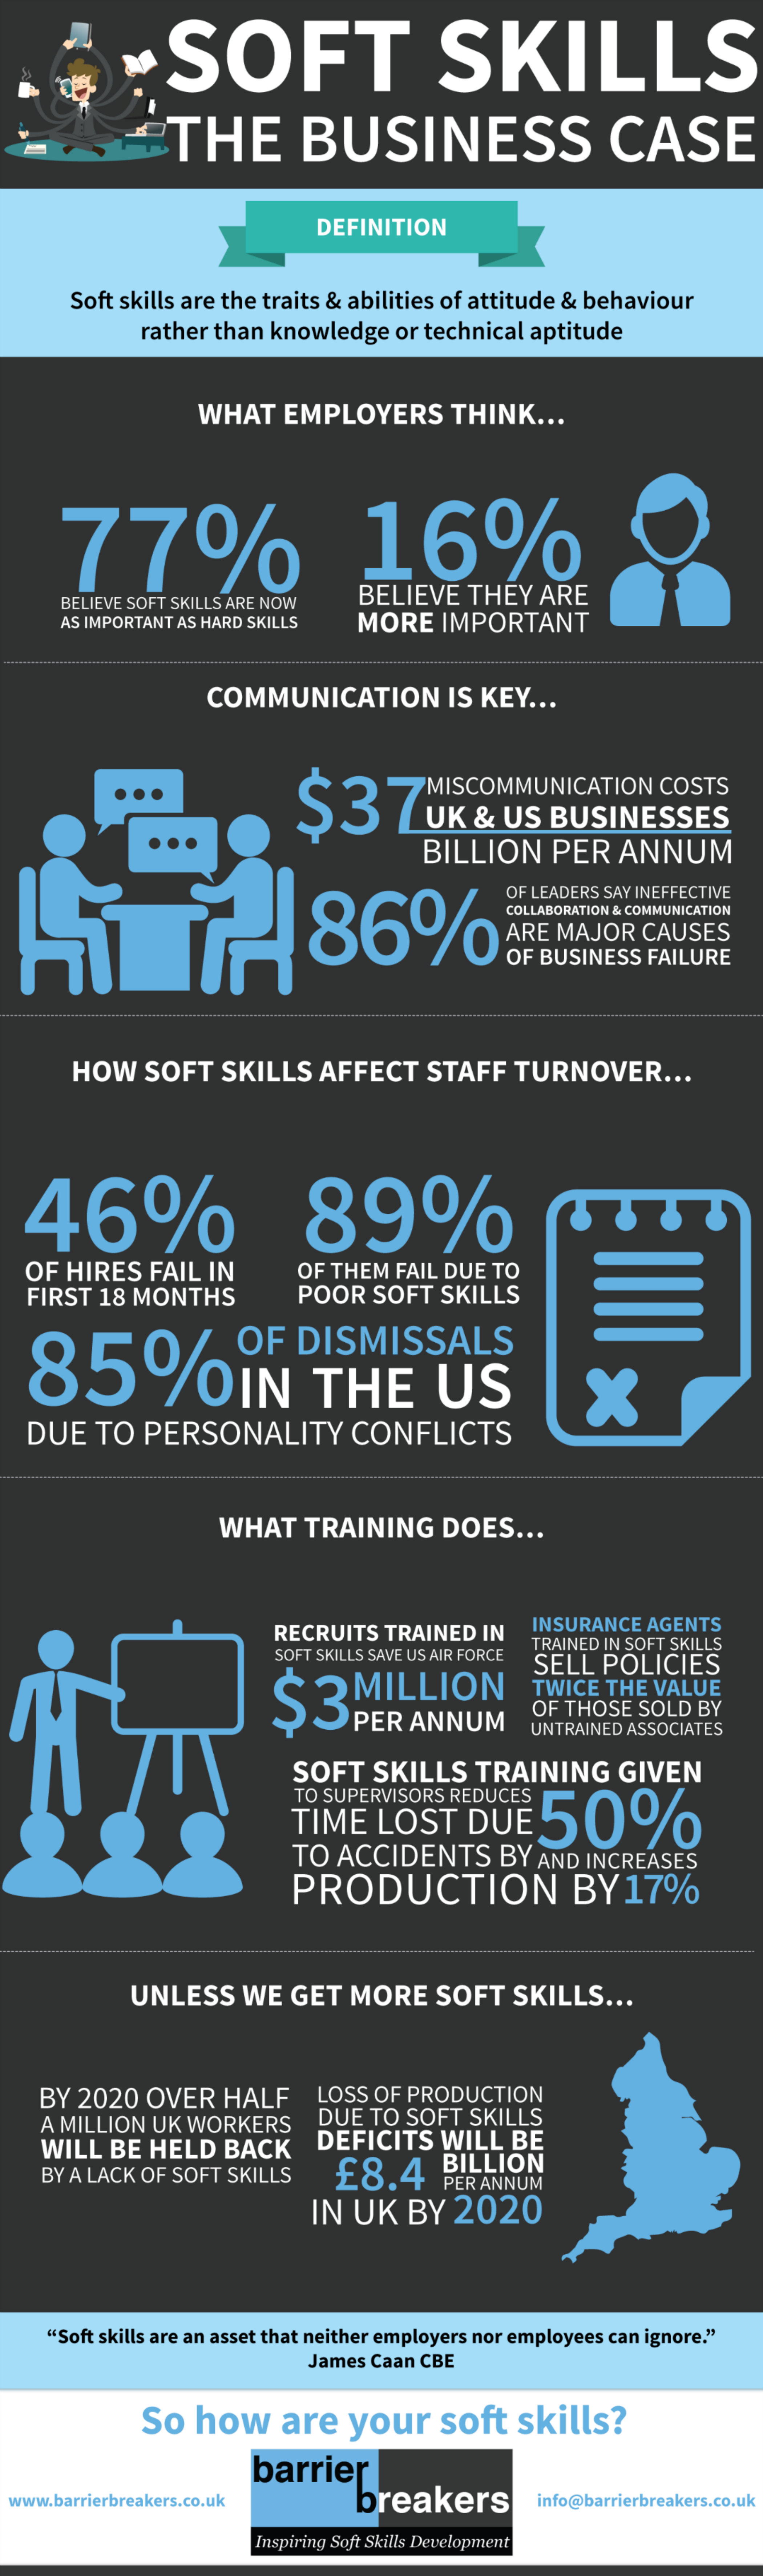 Soft Skills - the business case